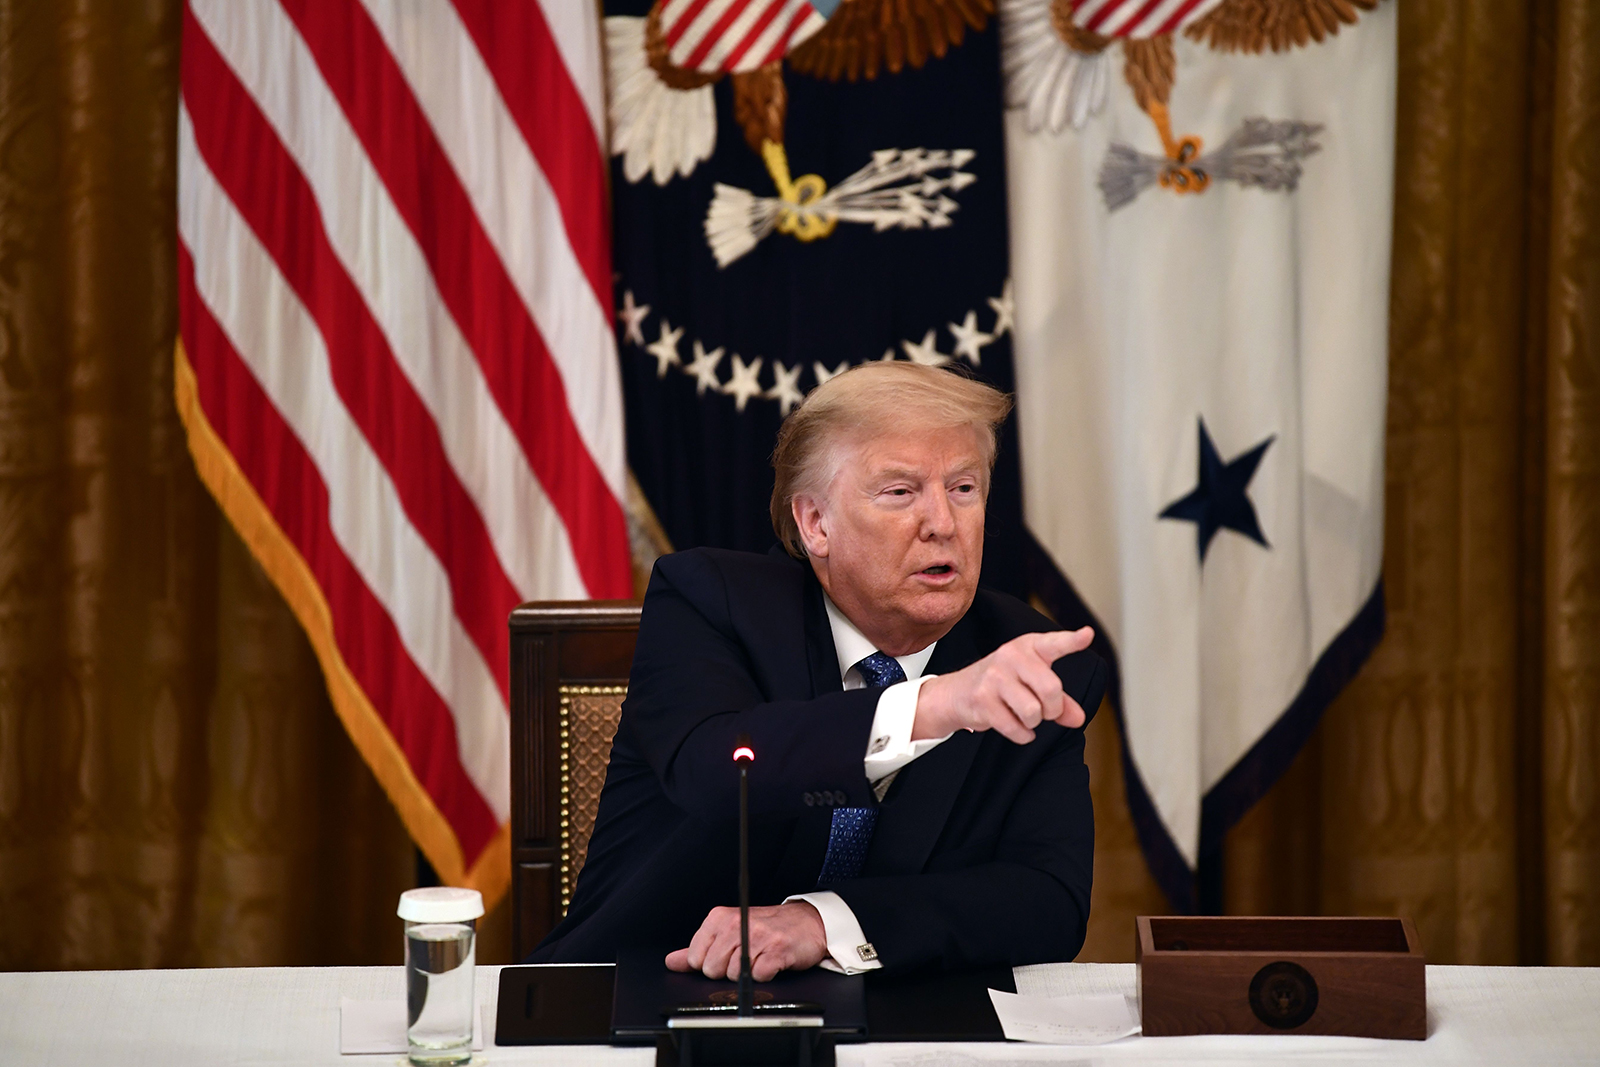 President Donald Trump speaks during a meeting with his cabinet on Tuesday, May 19, in Washington.